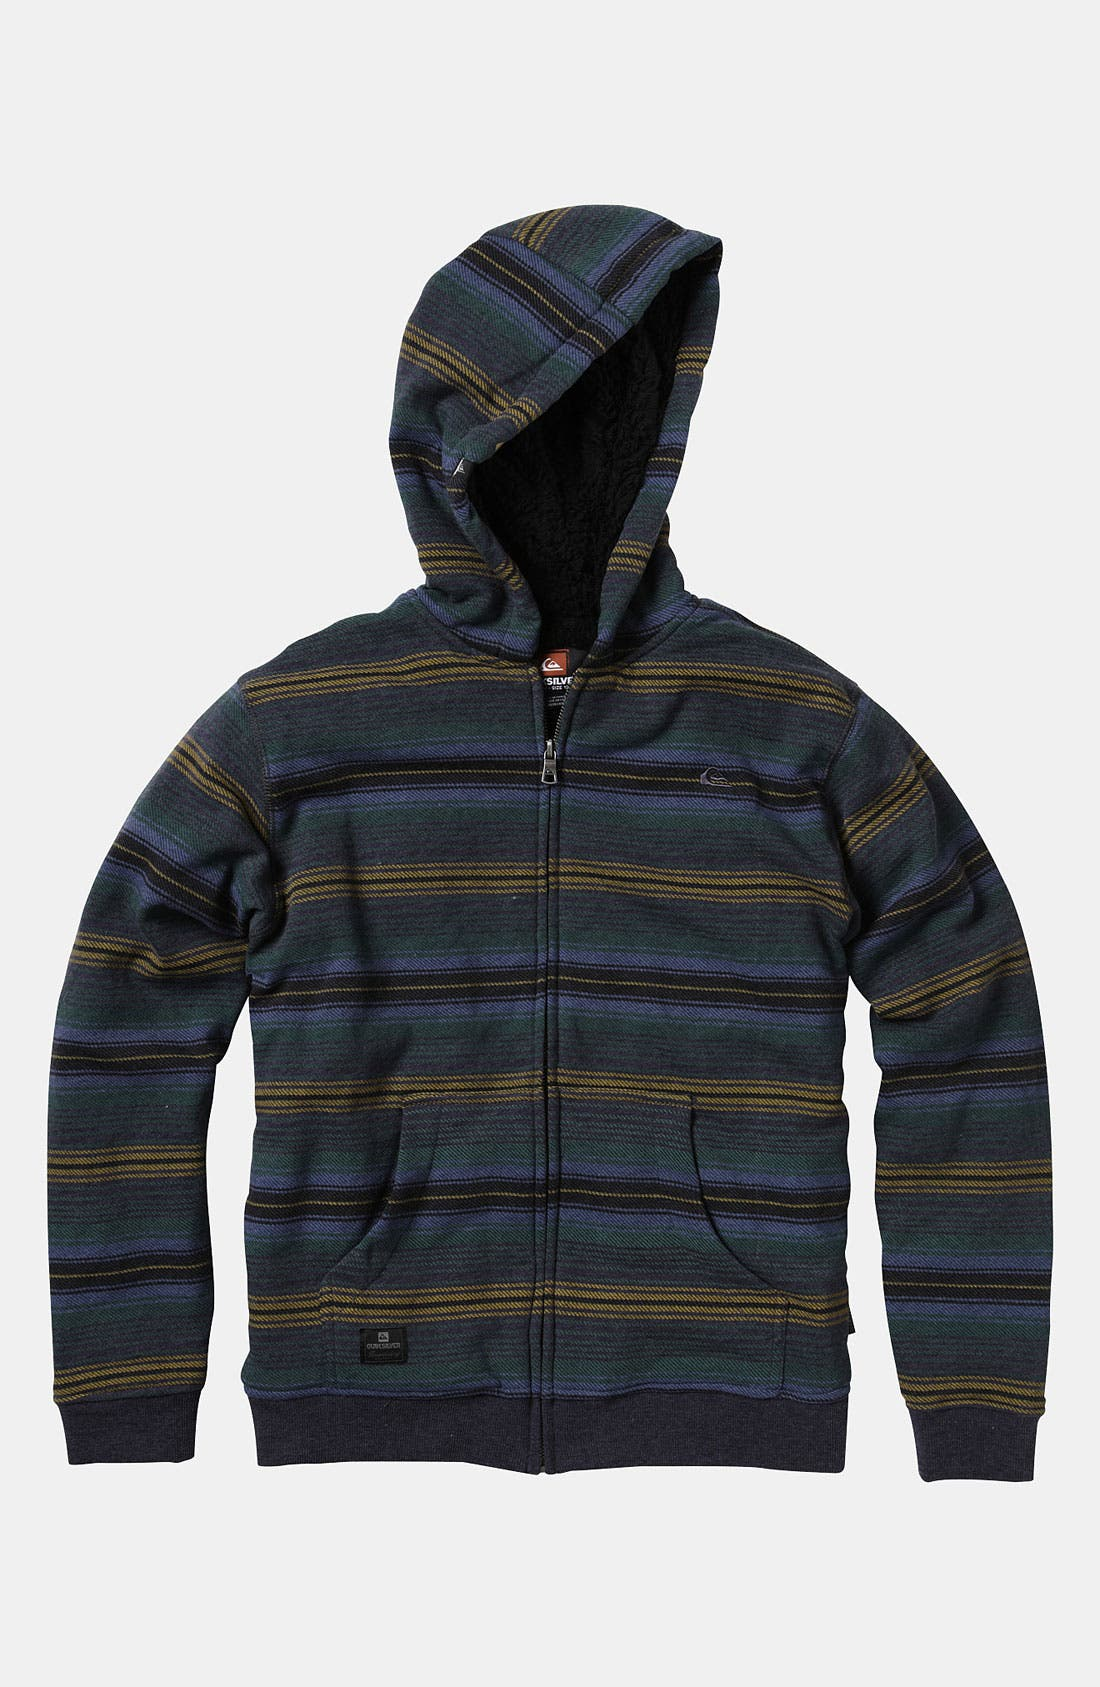 Alternate Image 1 Selected - Quiksilver 'Fisher' Zip Hoodie (Little Boys)